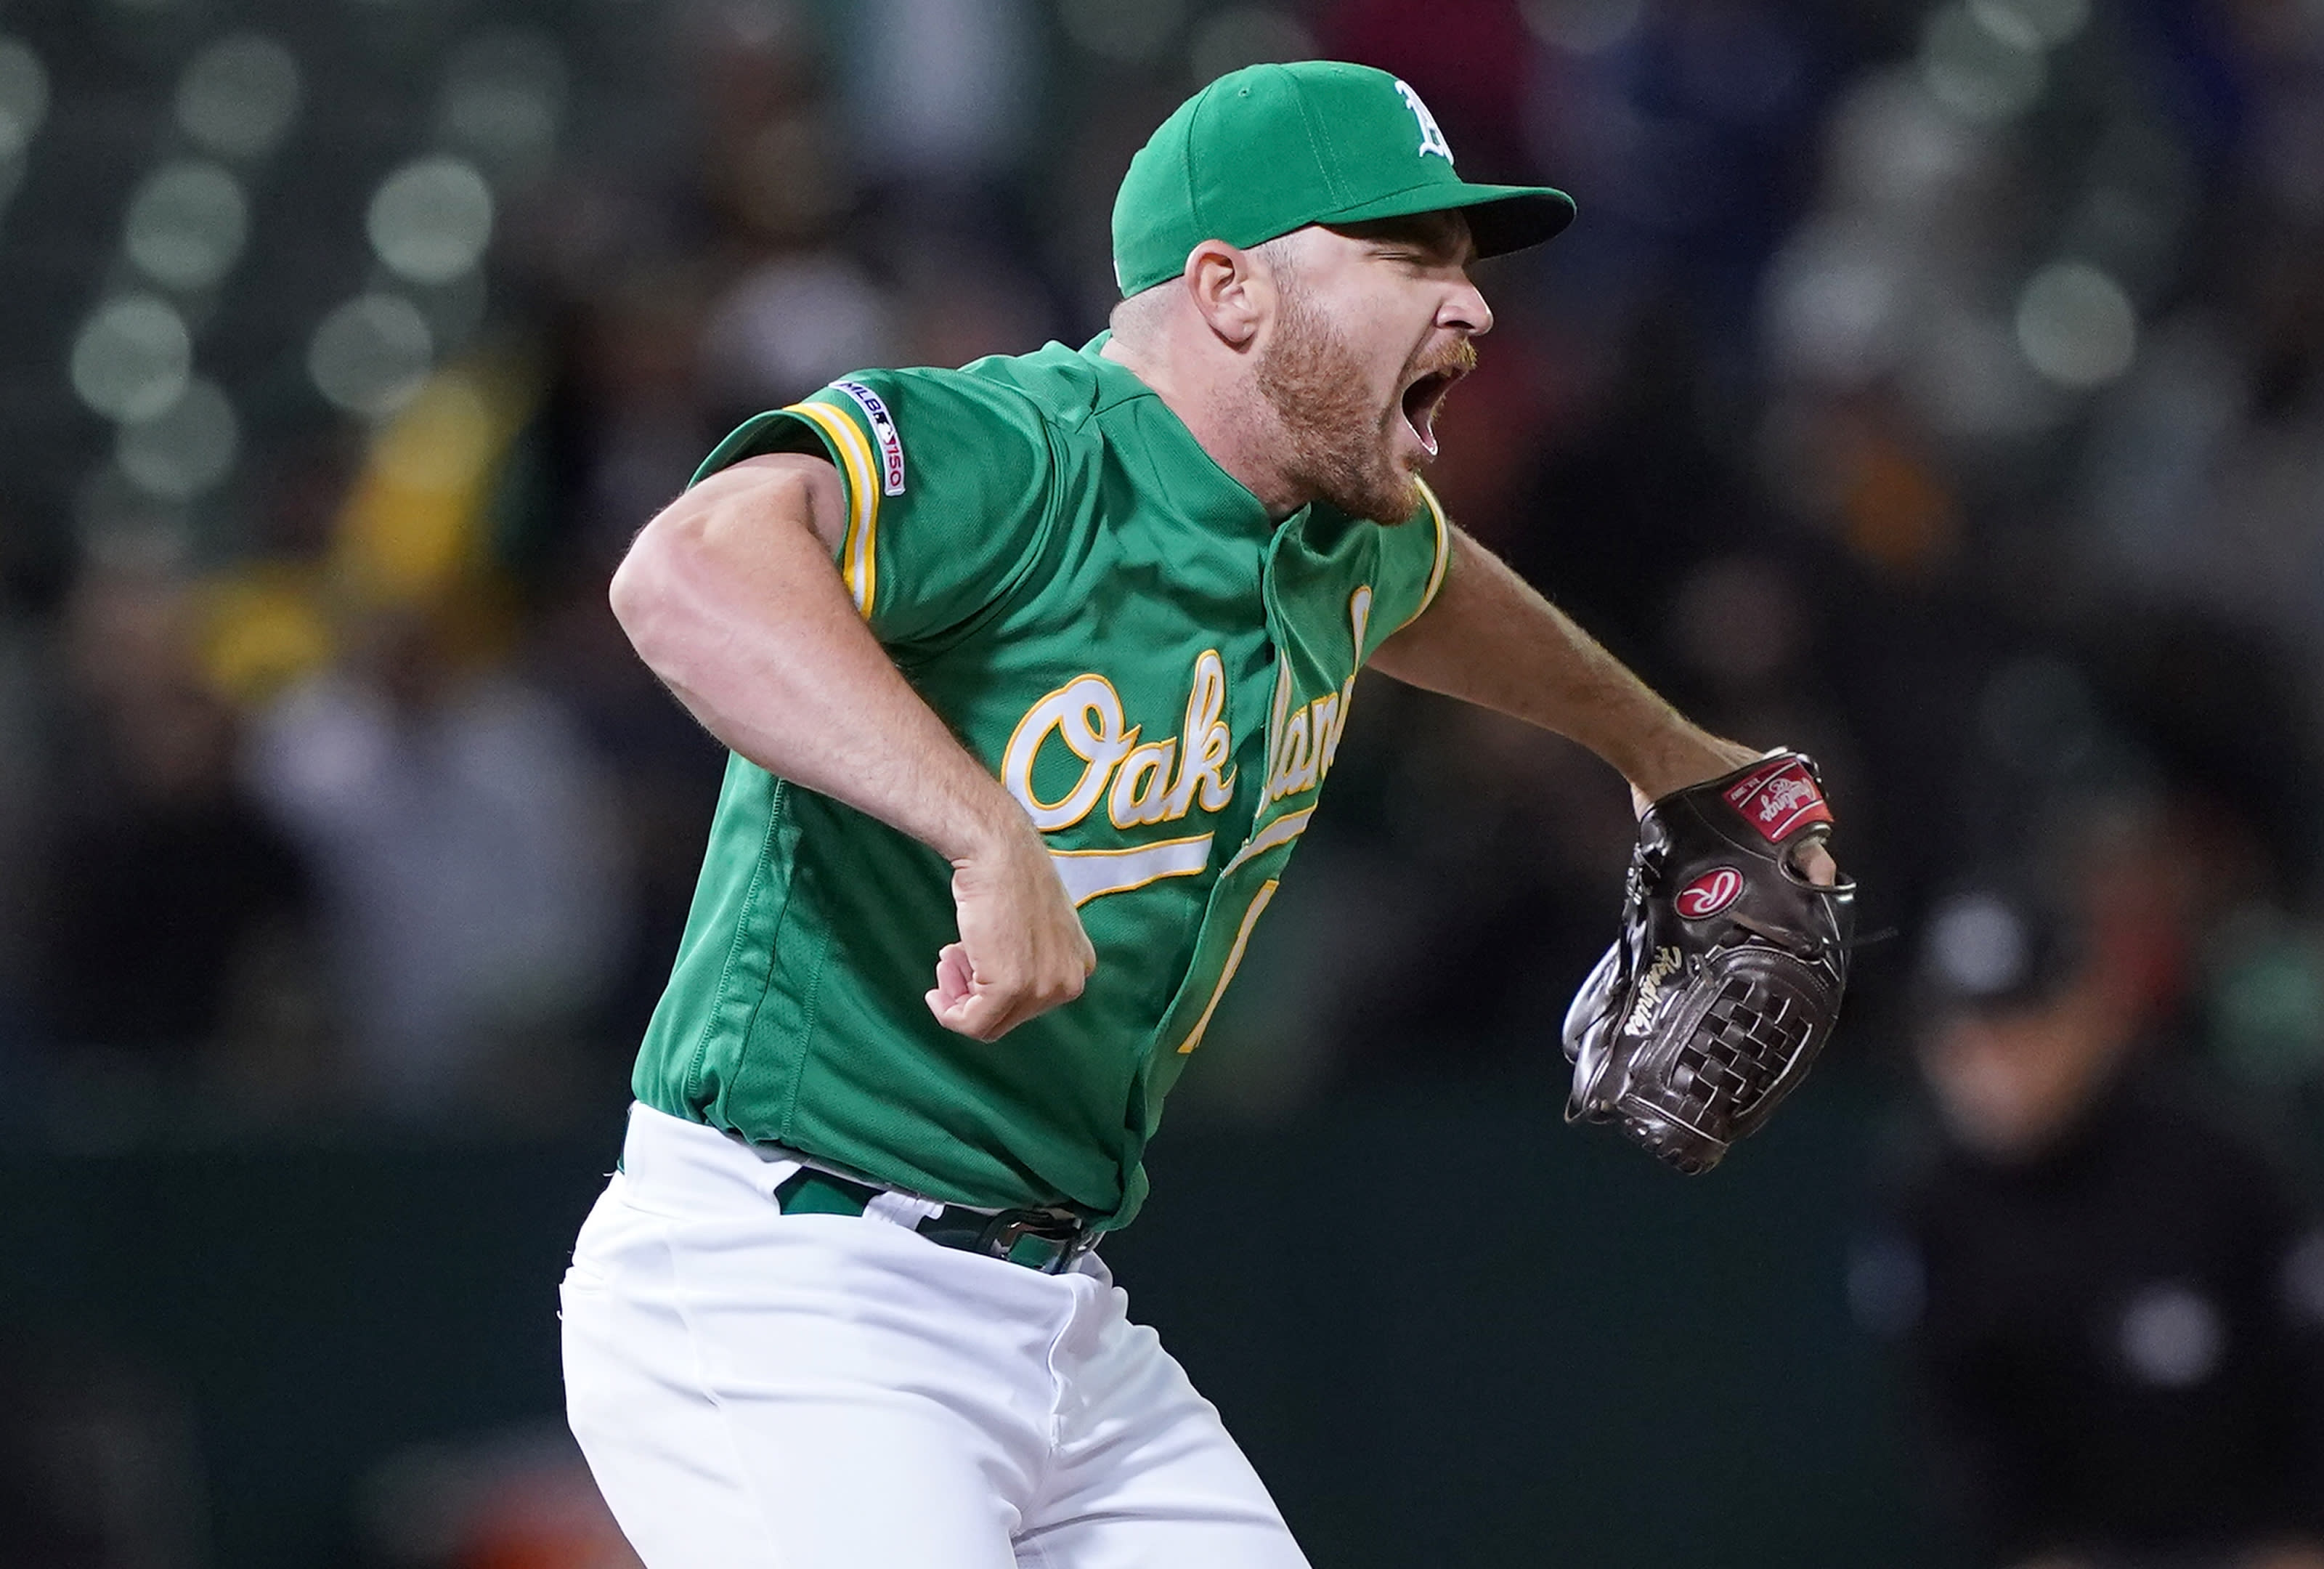 Liam Hendriks, a free-agent, celebrates an A's win. Hendriks is a potential Seattle Mariners target.